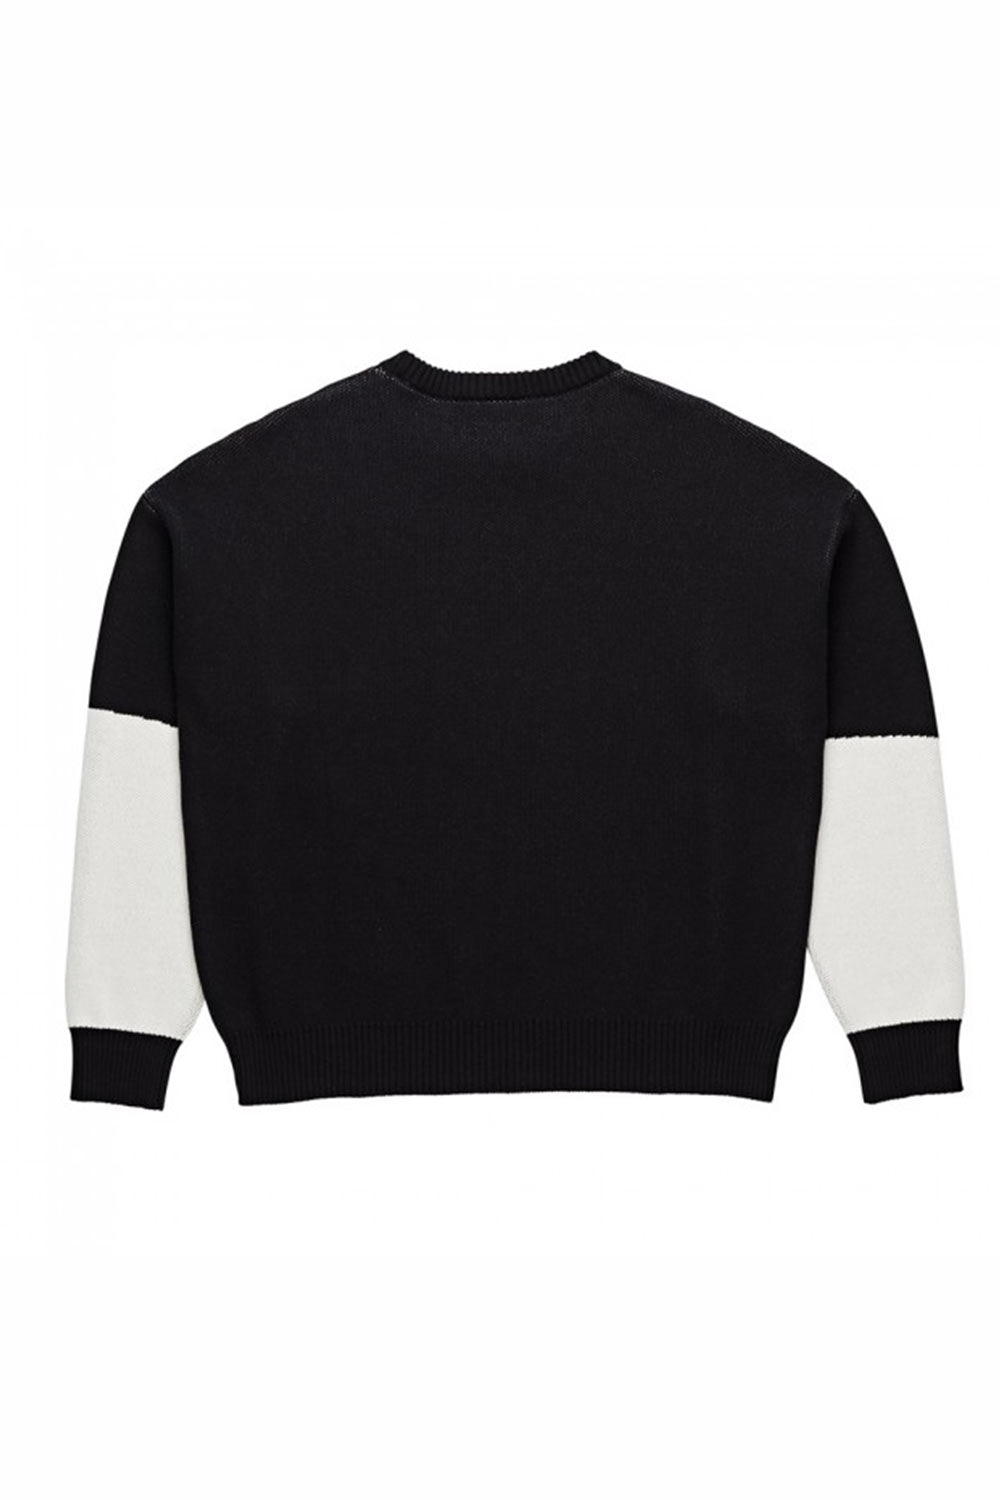 Polar Skate Co Art Knit Sweater - Black/White